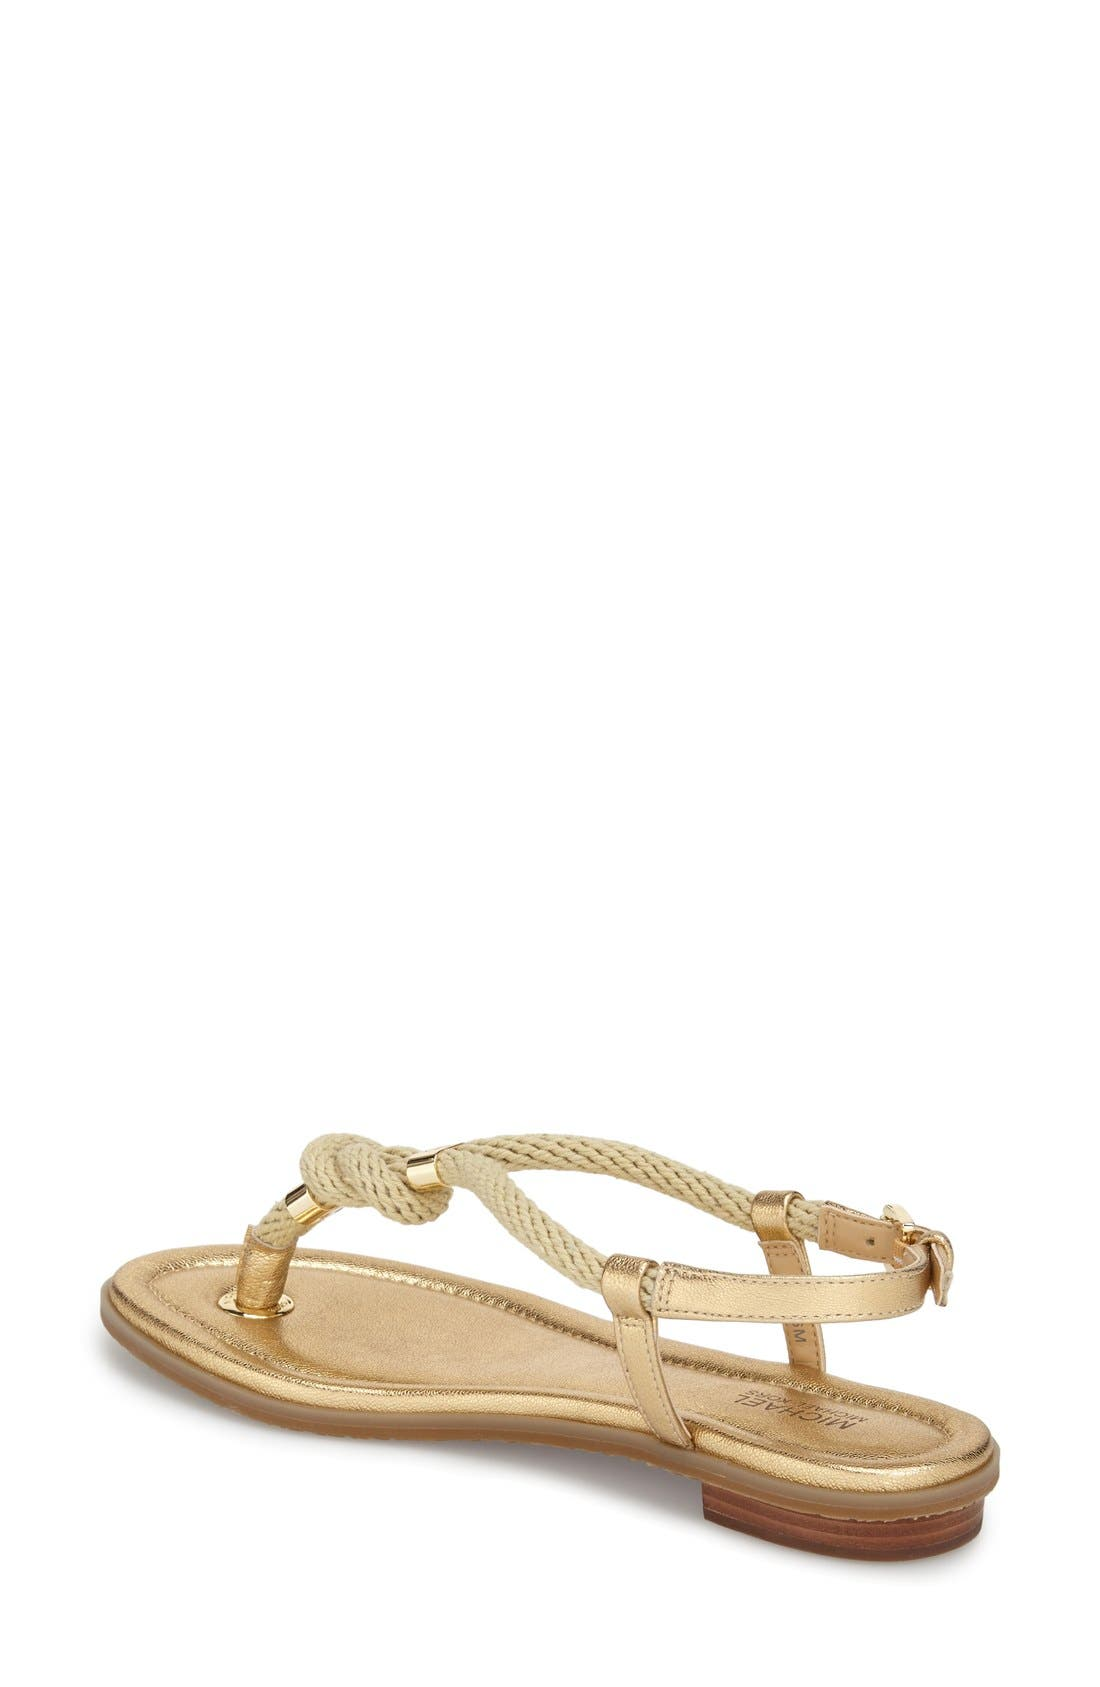 'Holly' Sandal,                             Alternate thumbnail 2, color,                             Pale Gold